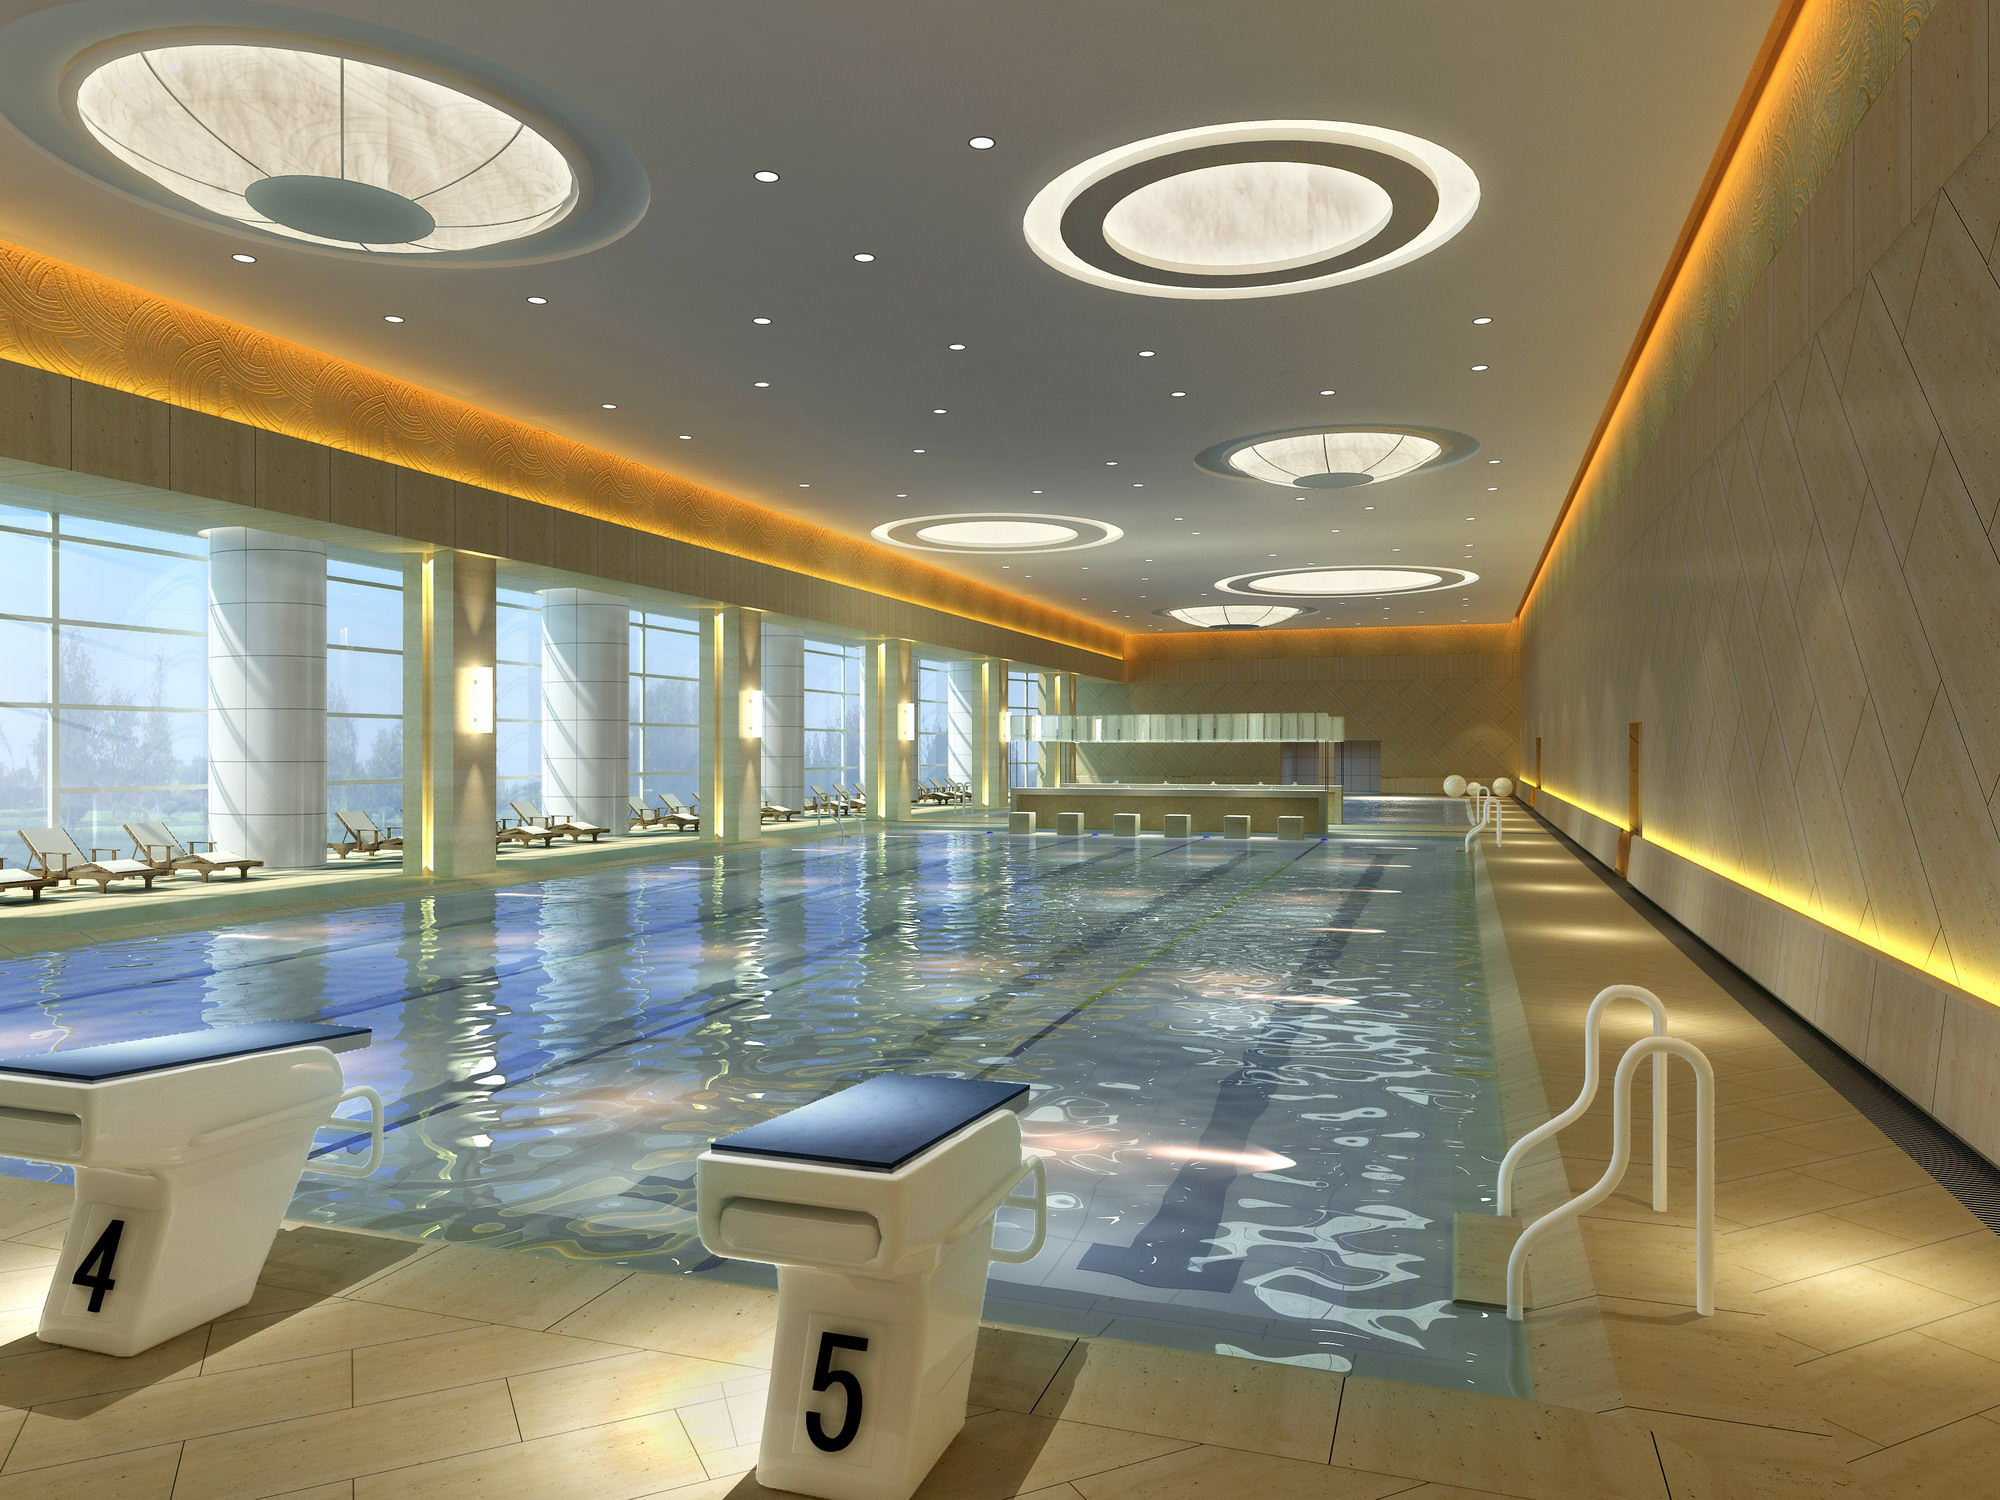 Swimming pool with tracks and fancy ceiling 3d model max for Indoor swimming pool ceiling materials